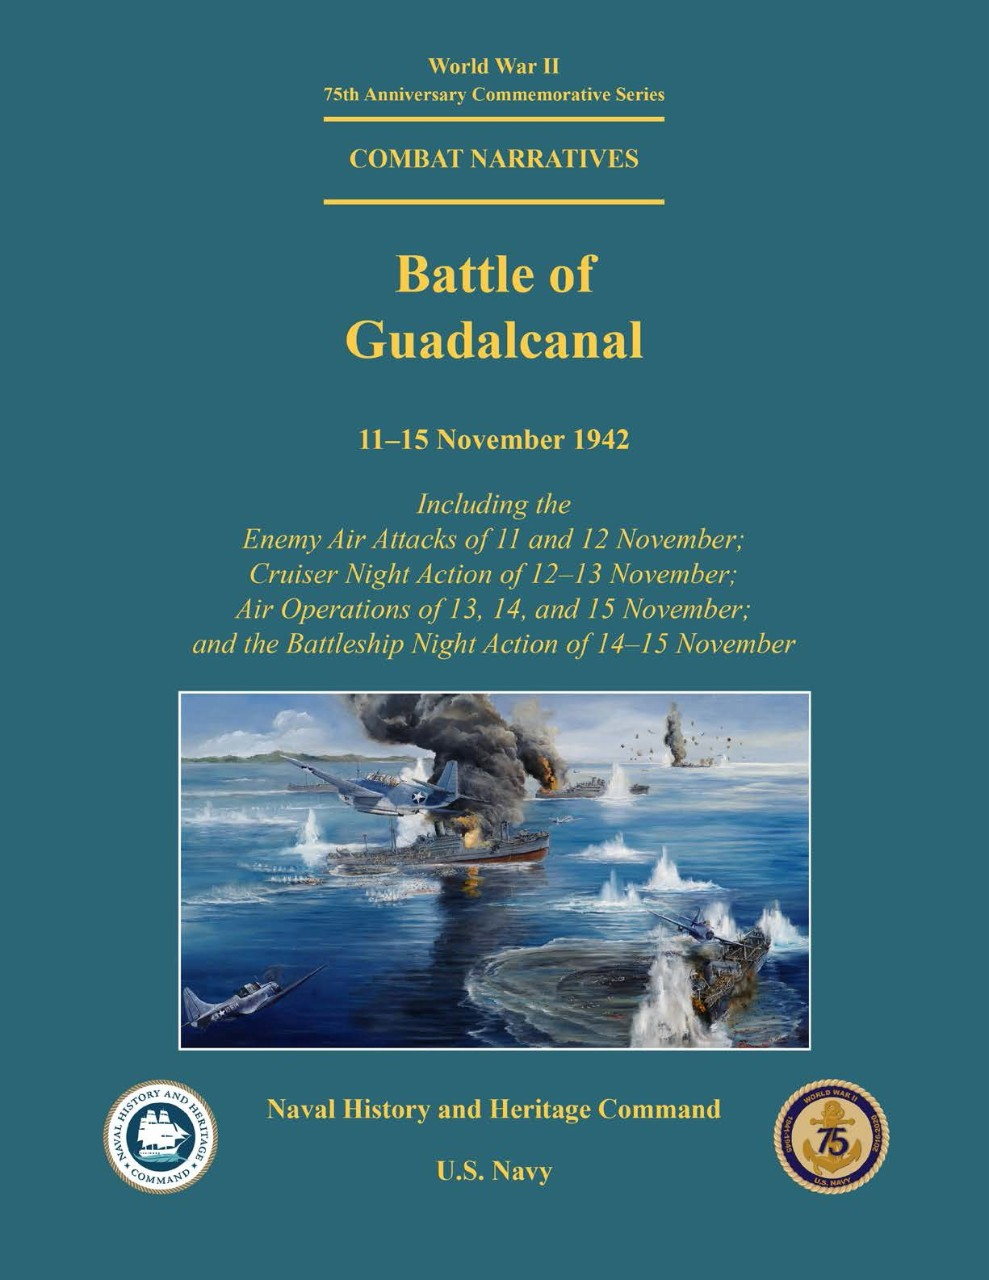 Battle of Guadalcanal 5